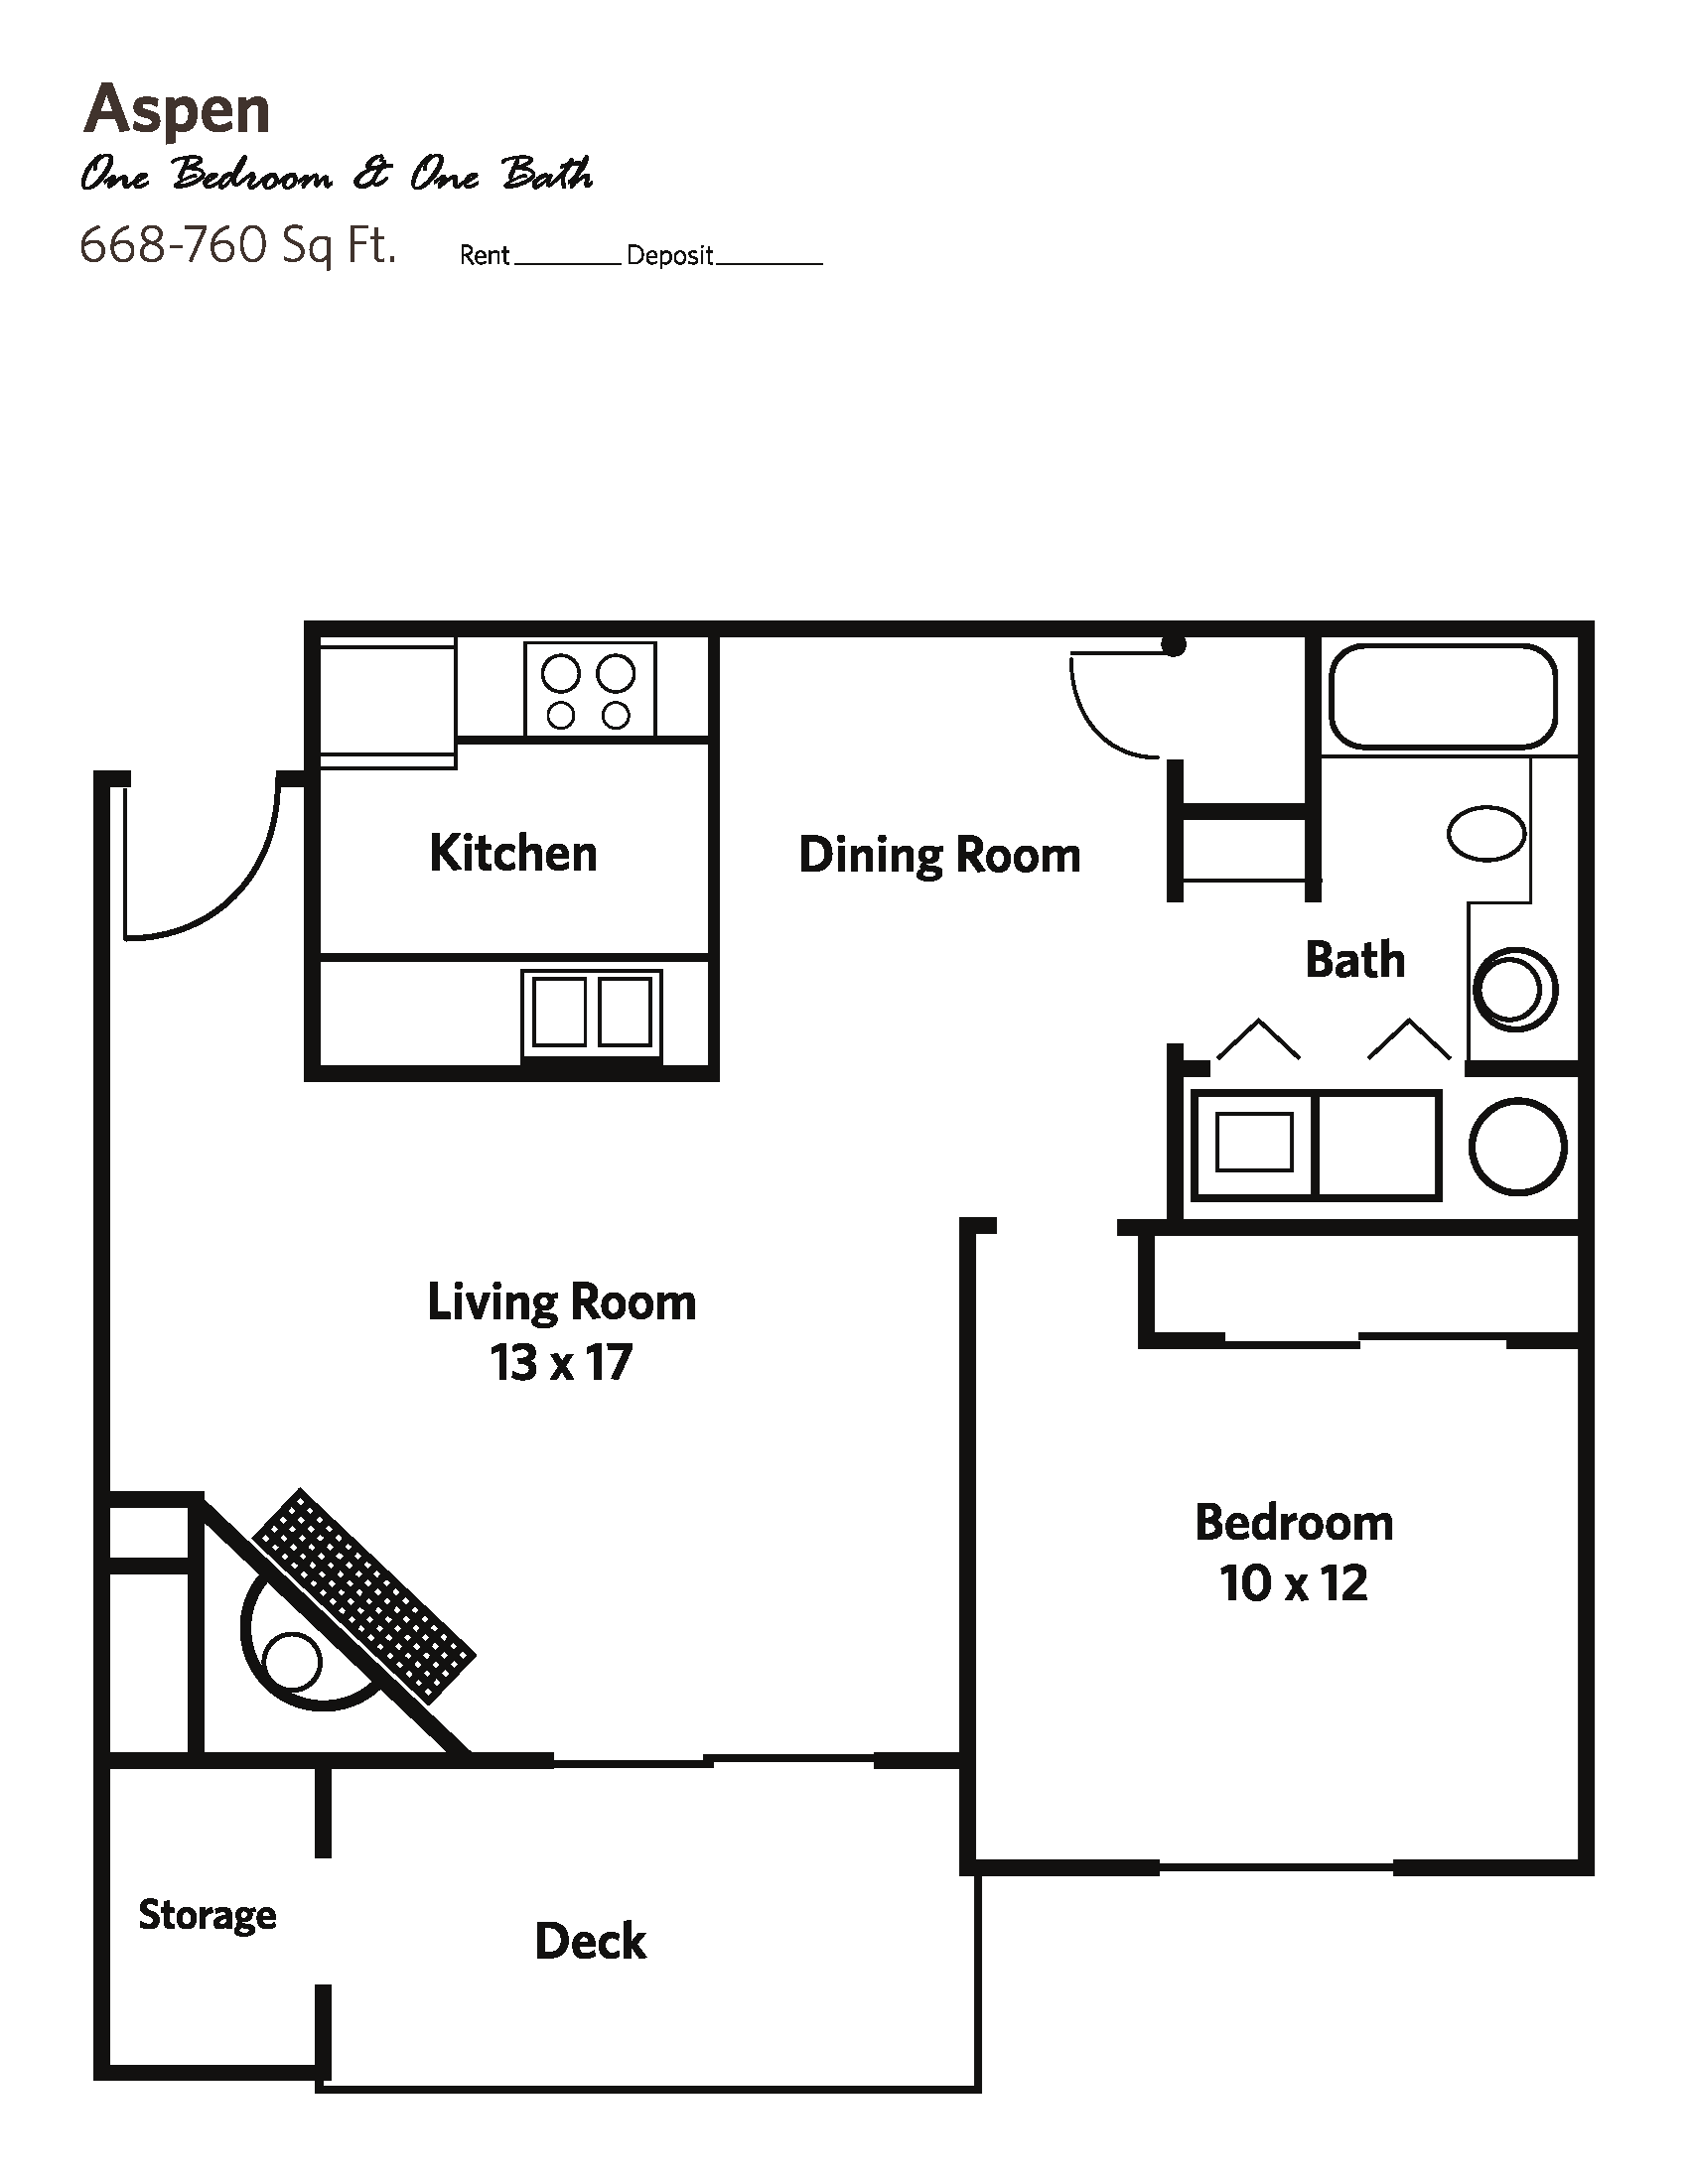 ASPEN Small (1 bed + 1 bath) - Apartments Floor Plan 1